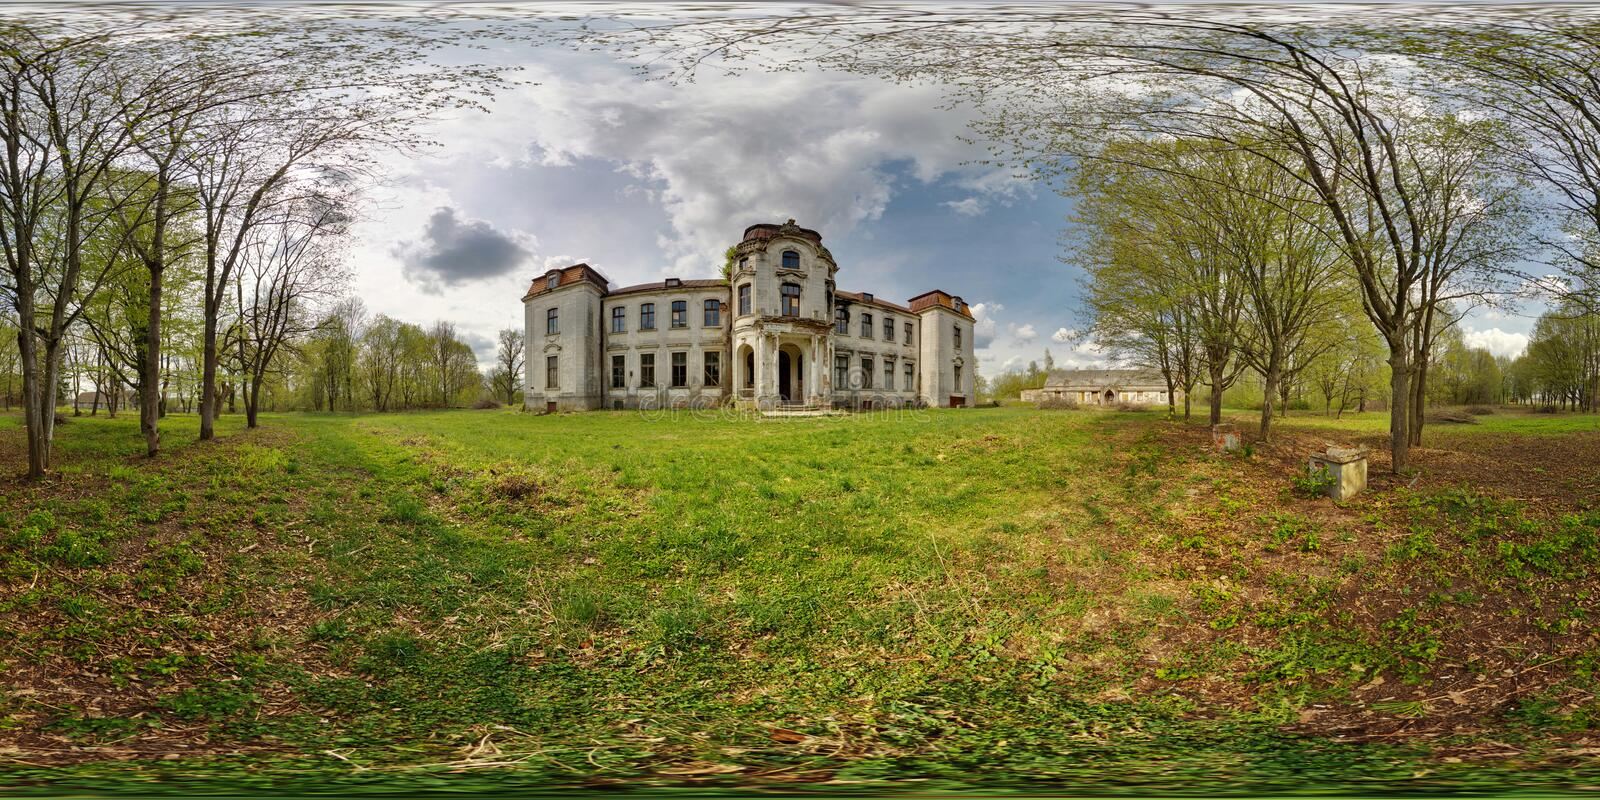 Full 360 degree panorama in equirectangular spherical projection old abandoned medieval castle in sunny day, VR content royalty free stock image